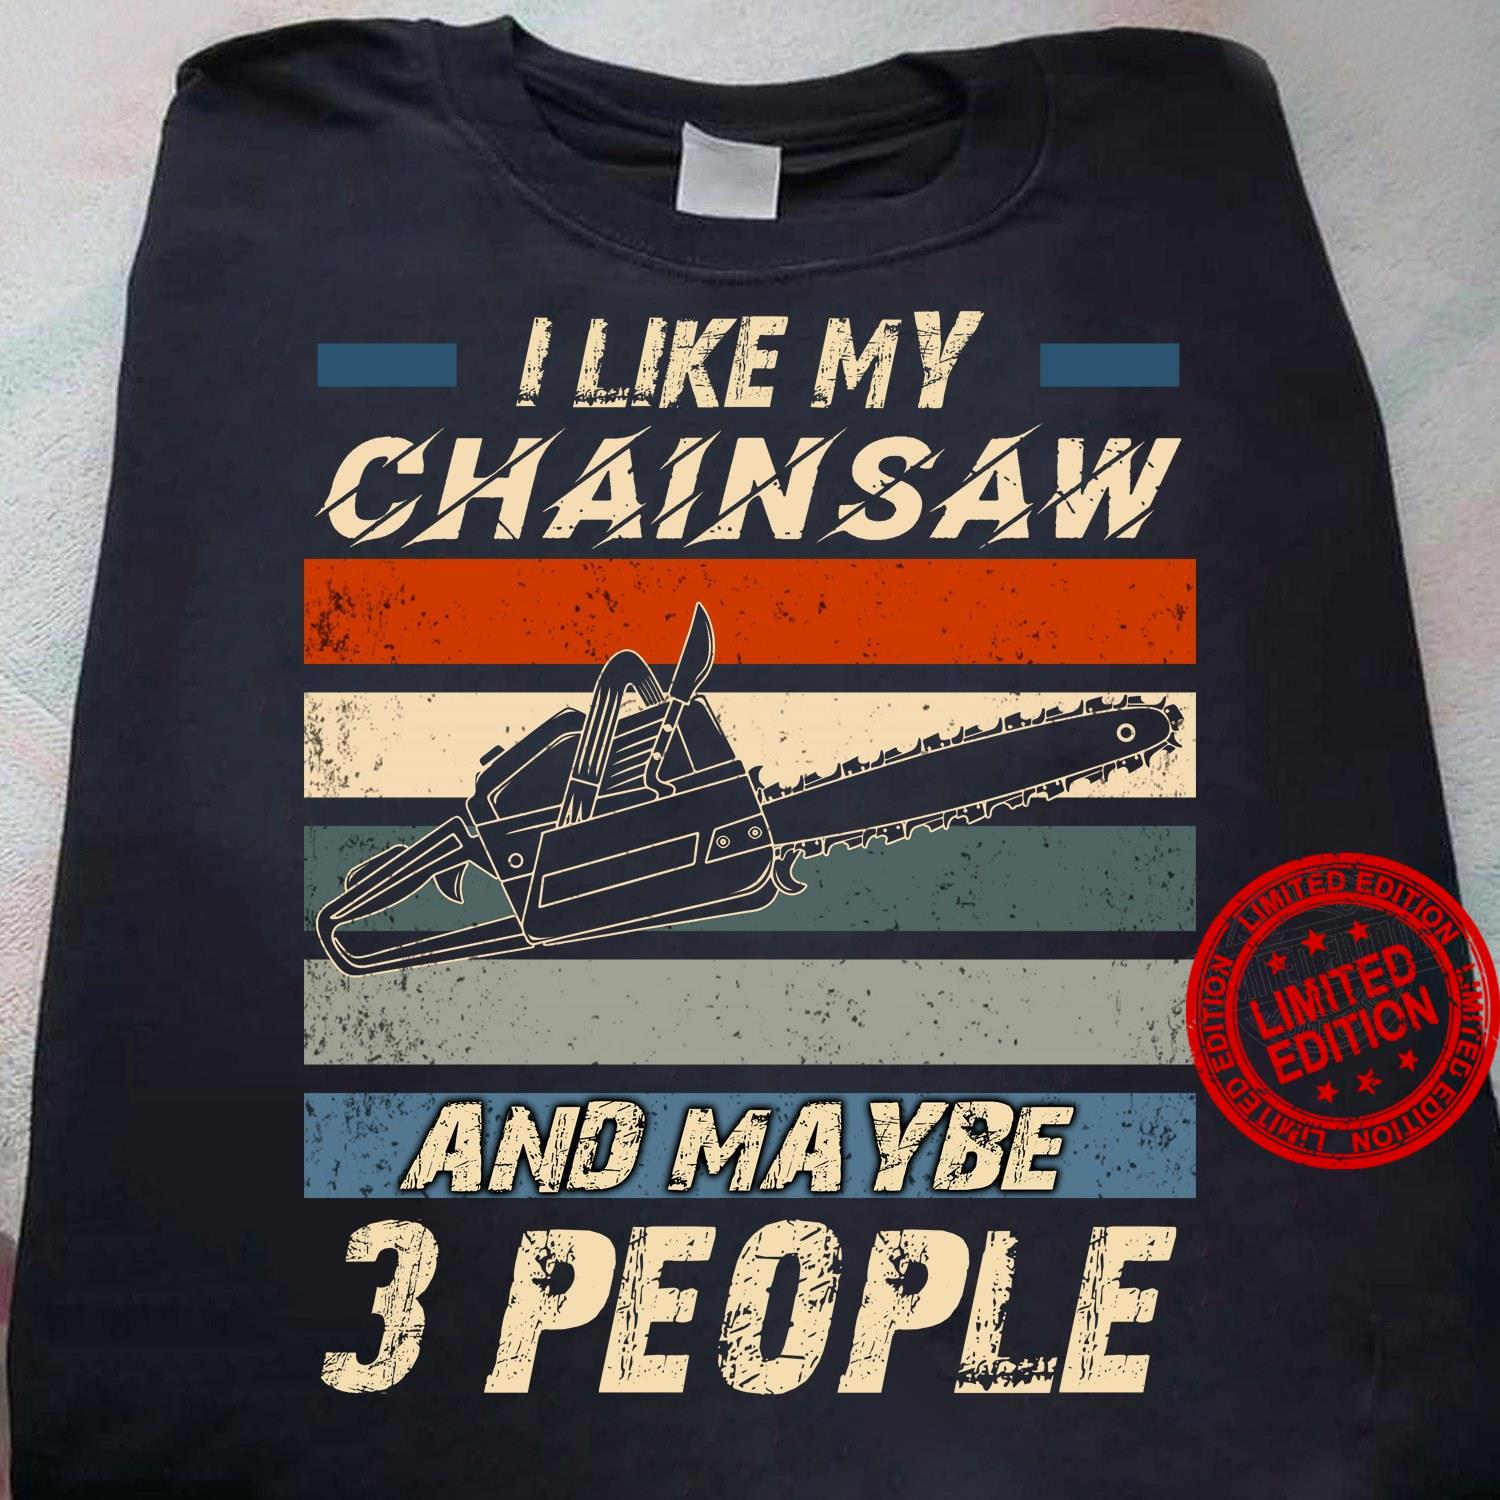 I Like My Chainsaw And May Be 3 People Shirt